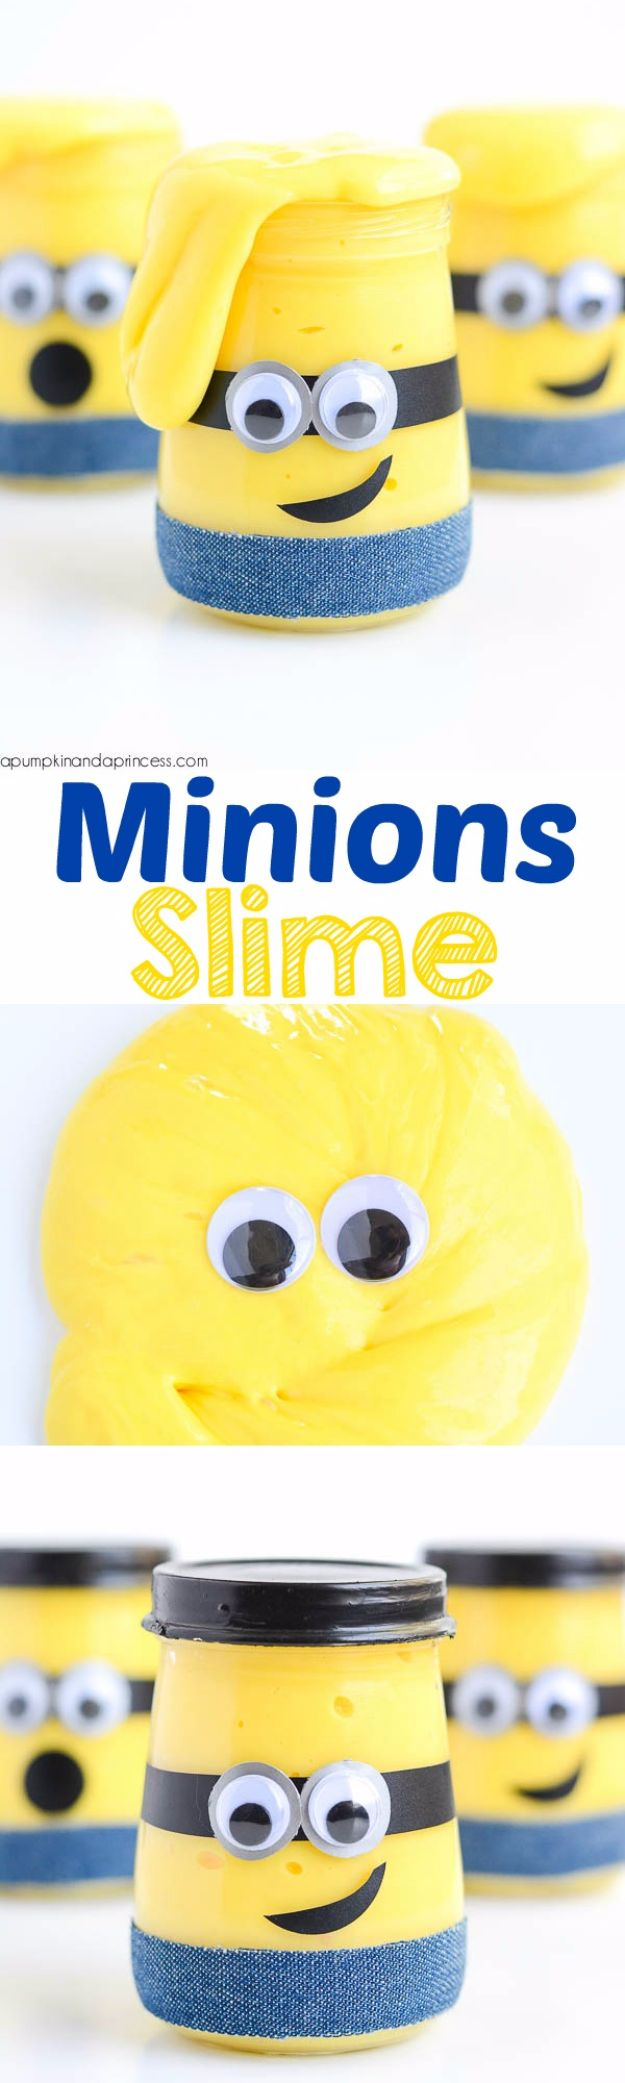 Best DIY Slime Recipes - Minions Slime - Cool and Easy Slime Recipe and Tutorials - Ideas Without Glue, Without Borax, For Kids, With Liquid Starch, Cornstarch and Laundry Detergent - How to Make Slime at Home - Fun Crafts and DIY Projects for Teens, Kids, Teenagers and Teens - Galaxy and Glitter Slime, Edible Slime, Rainbow Colored Slime, Shaving Cream recipes and more fun crafts and slimes #slimerecipes #slime #diyslime #teencrafts